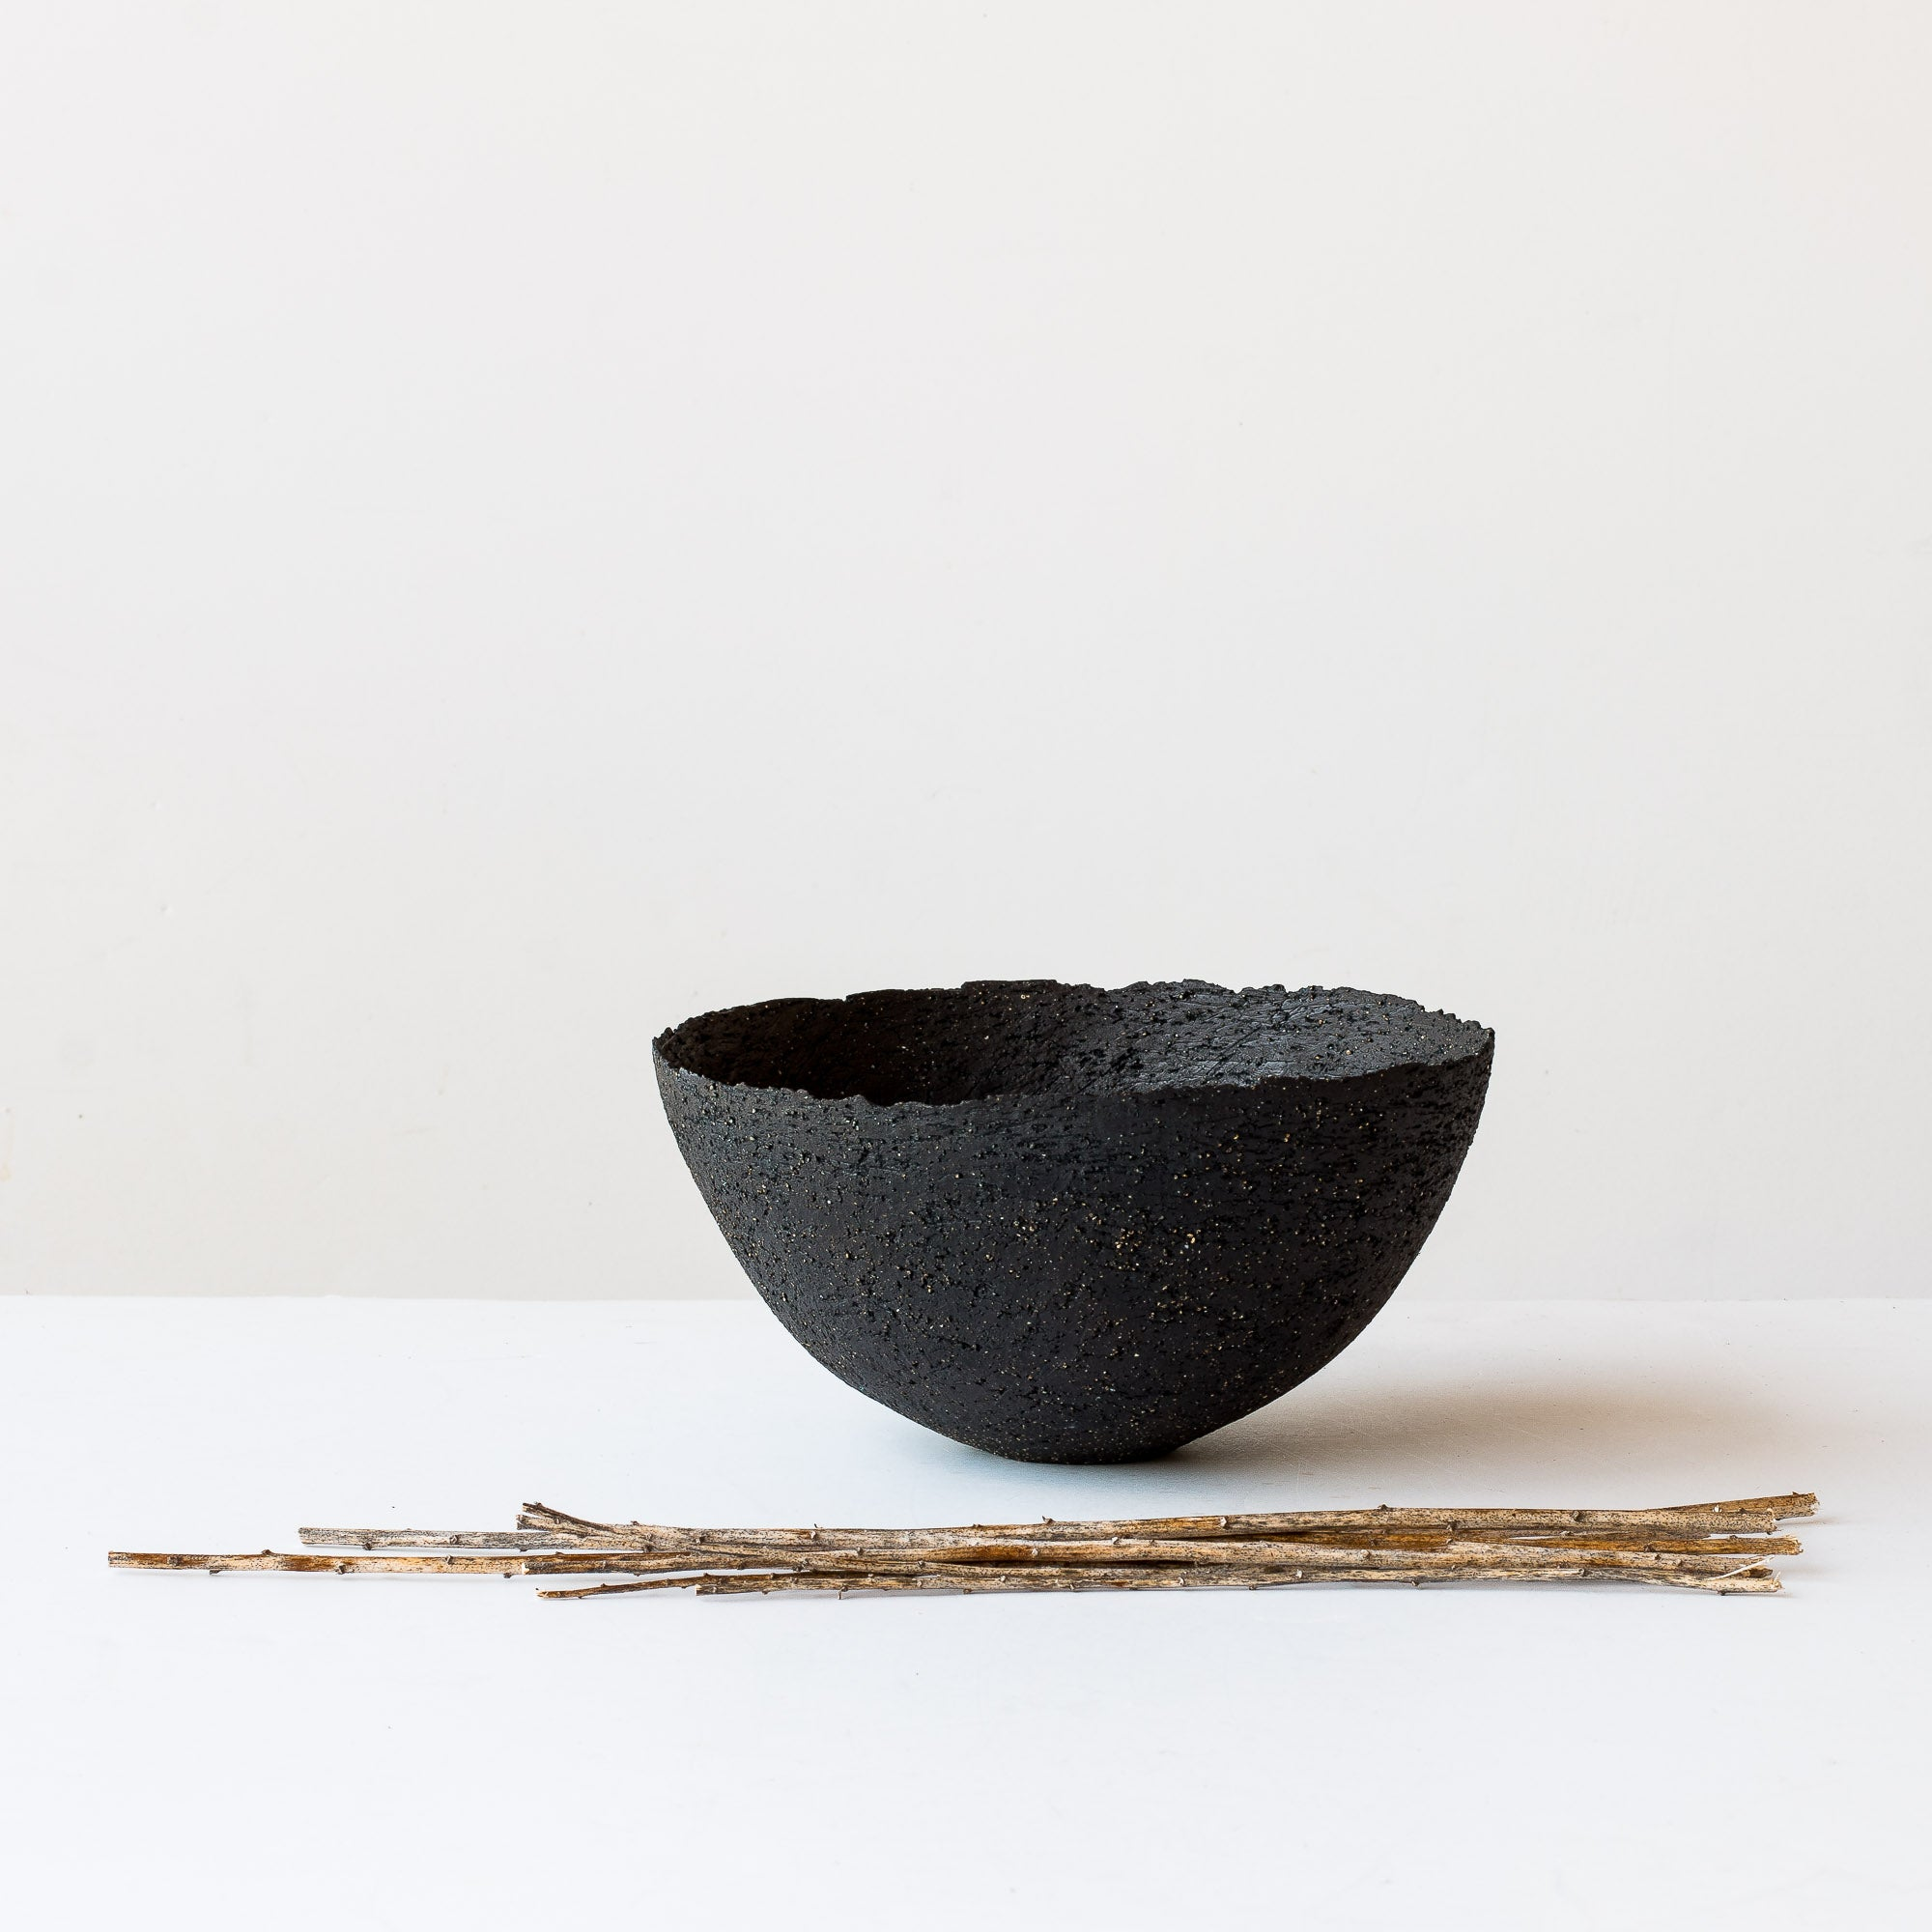 Coquilles - Handbuilt Stoneware Bowl in Black Stoneware - Sold by Chic & Basta